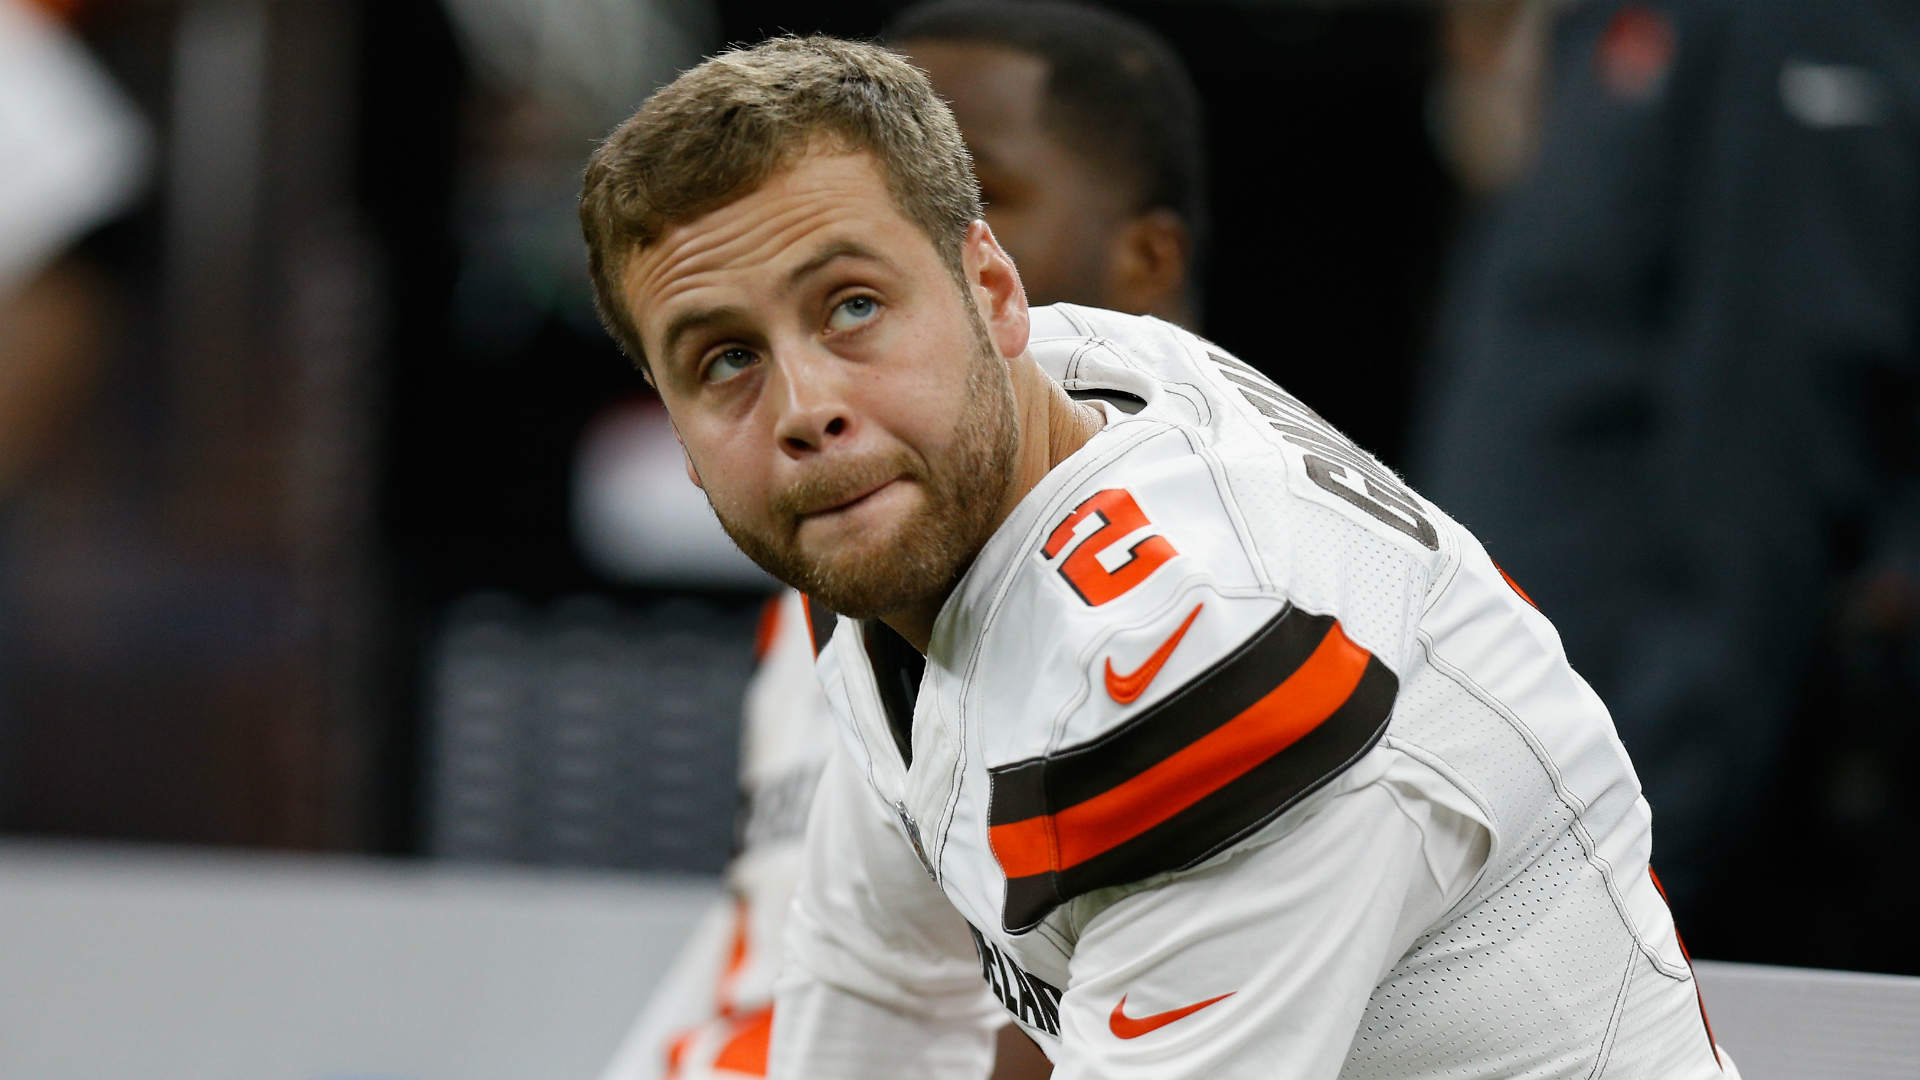 Social media reacts to Zane Gonzalez missed field goals vs. Saints